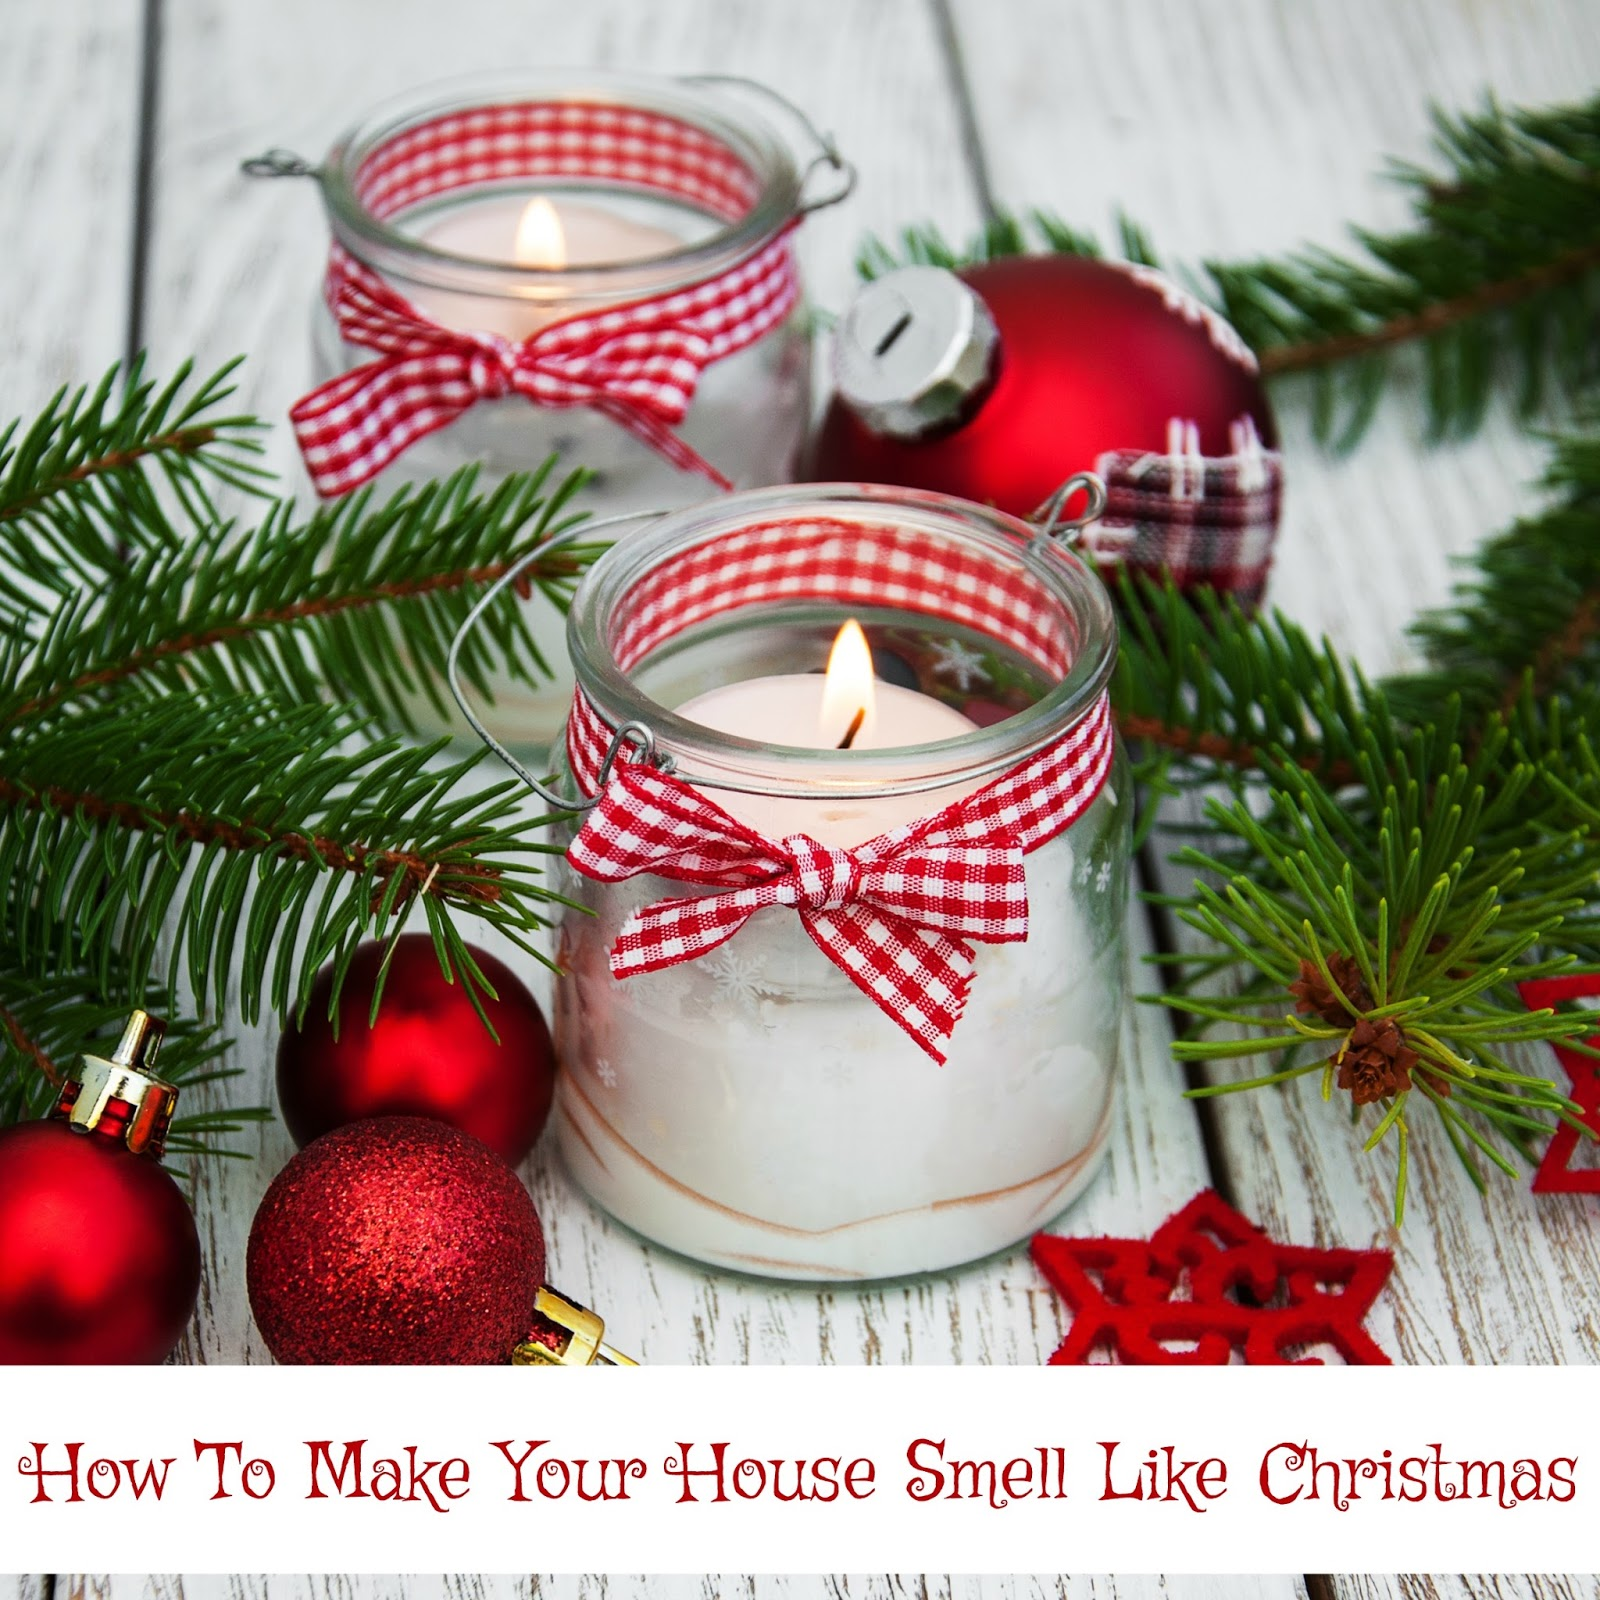 Life With 4 Boys: How to Make Your House Smell Like